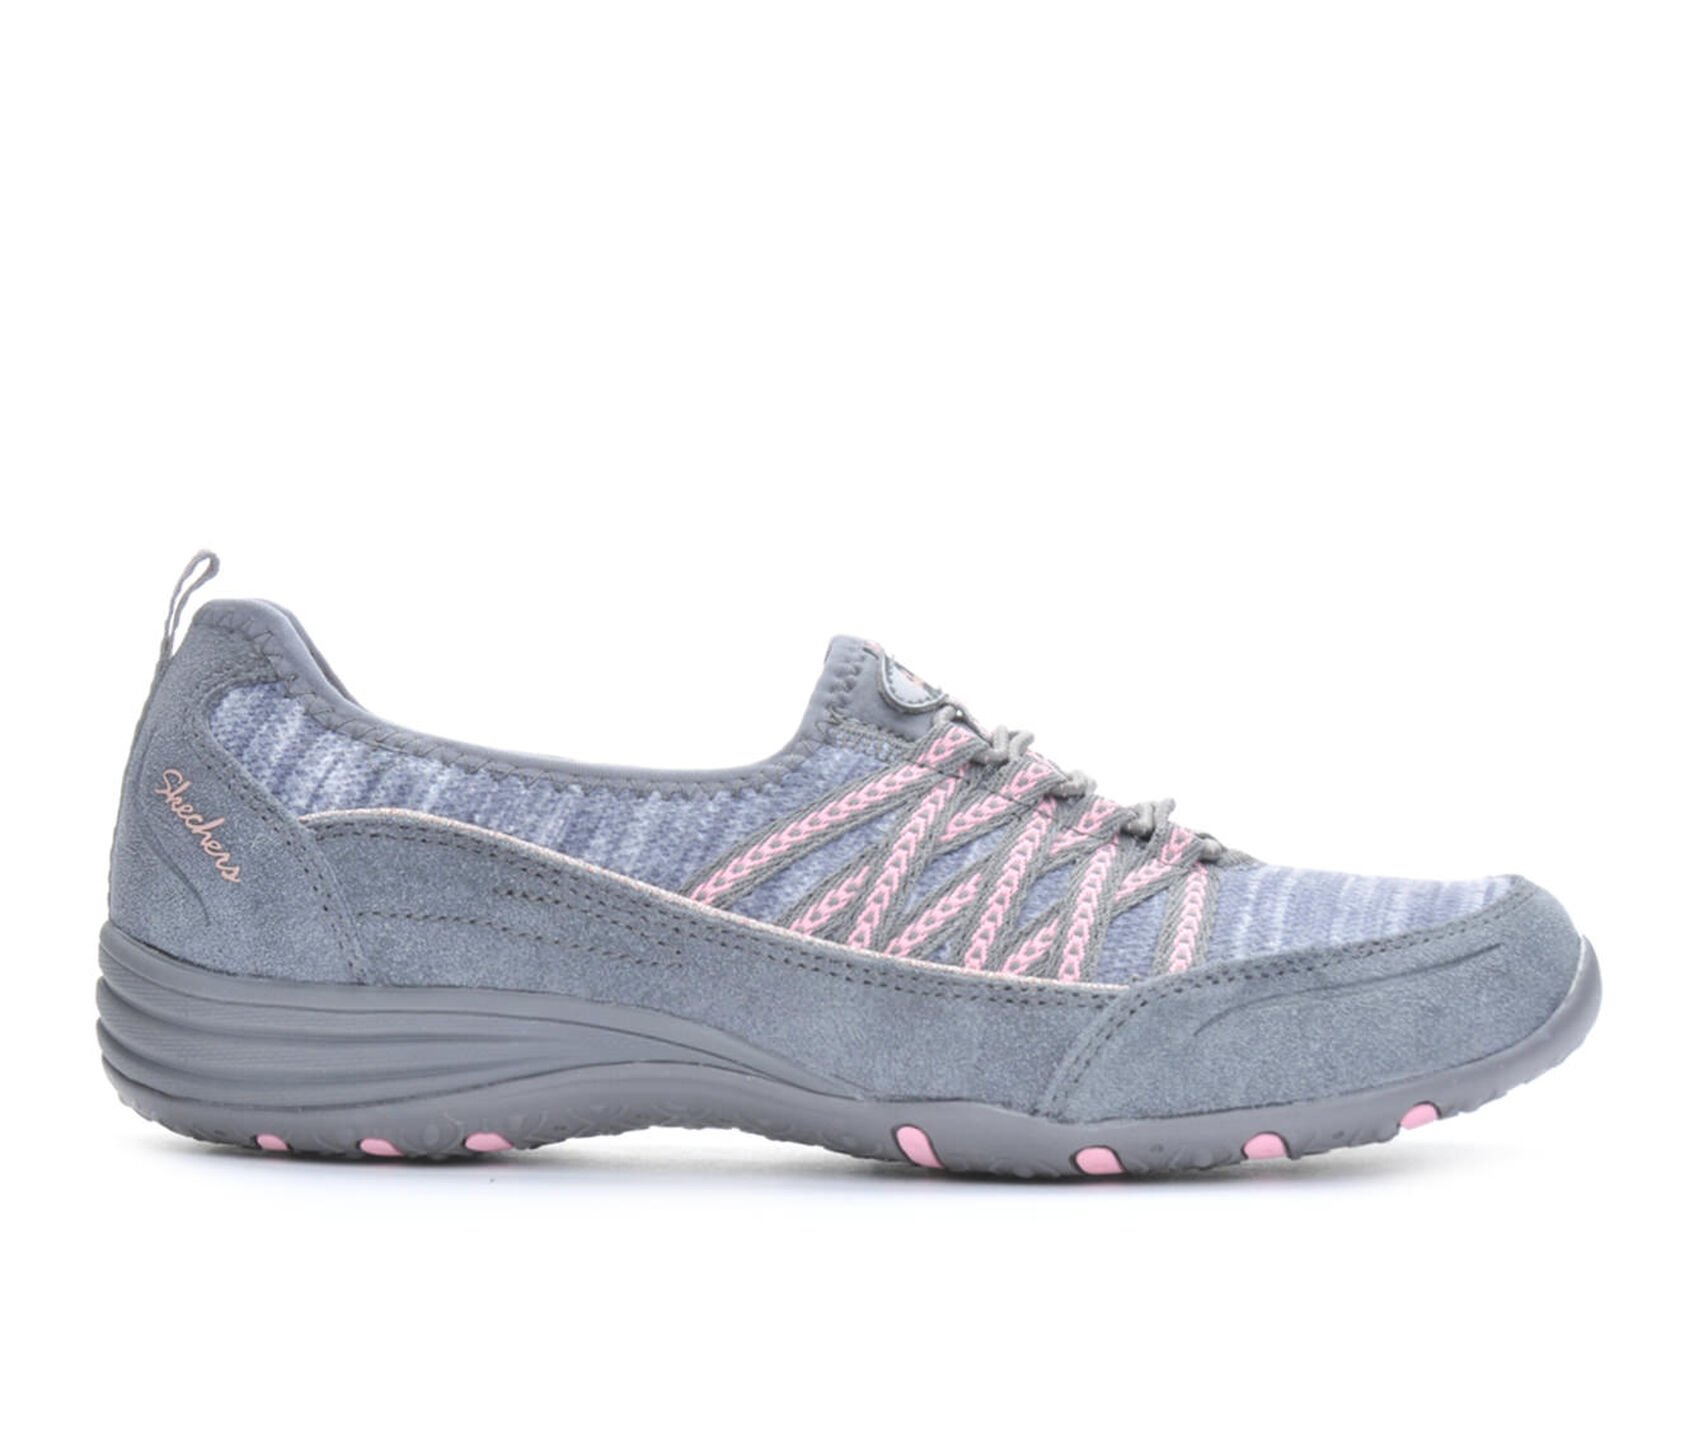 How to use a Skechers coupon Join Skechers Elite to receive exclusive discounts, offers, coupons and bonus point opportunities. Get free shipping and receive a $10 gift certificate for every points earned as a Skechers Elite member.